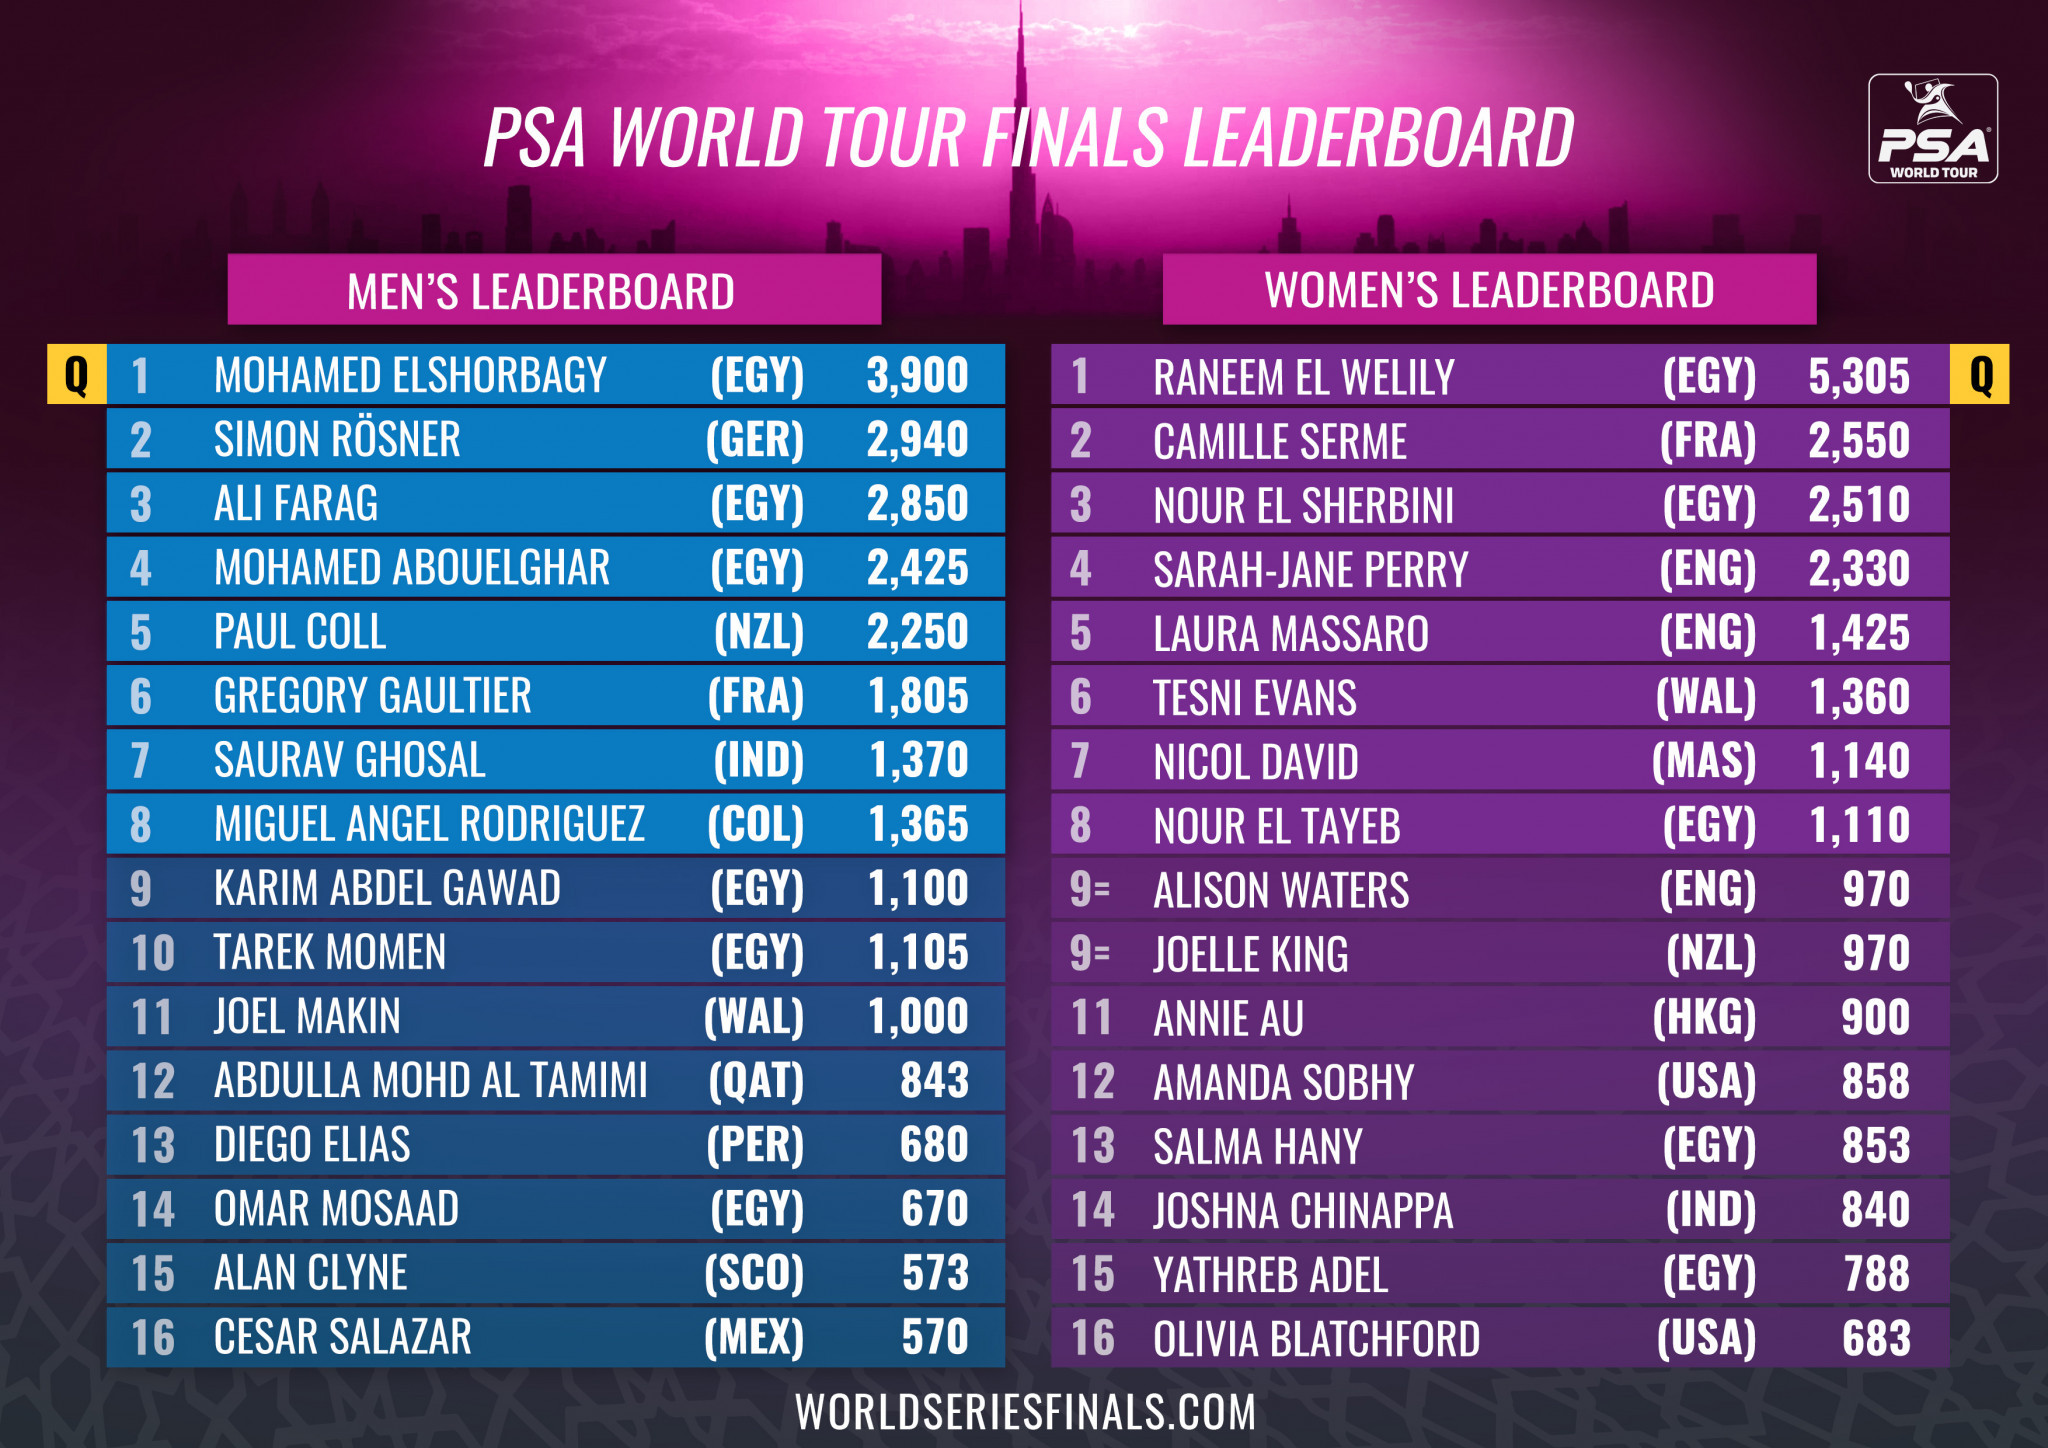 World squash champions Mohamed Elshorbagy and Raneem El Welily  top their respective leaderboards ©PSA